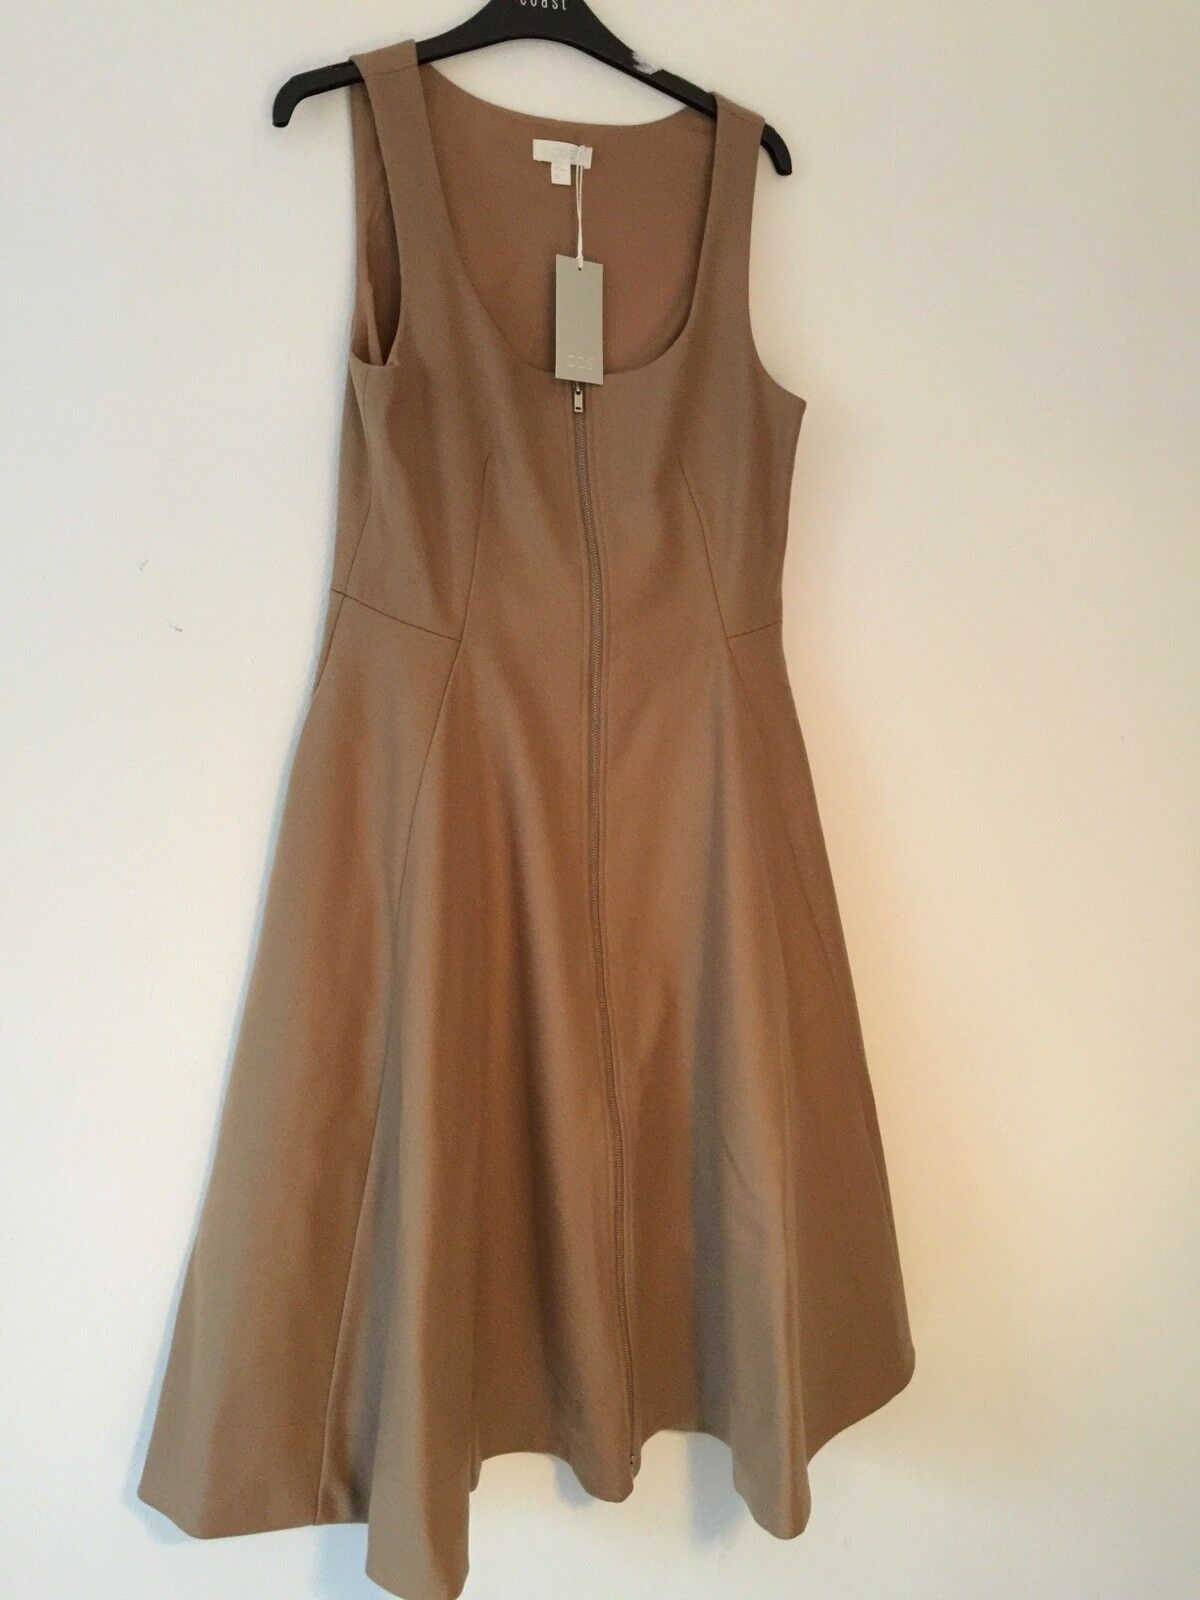 Cos -- Cashmere Wool - A  Line Dress - Size - 10 - New With Tag - Camel Beige